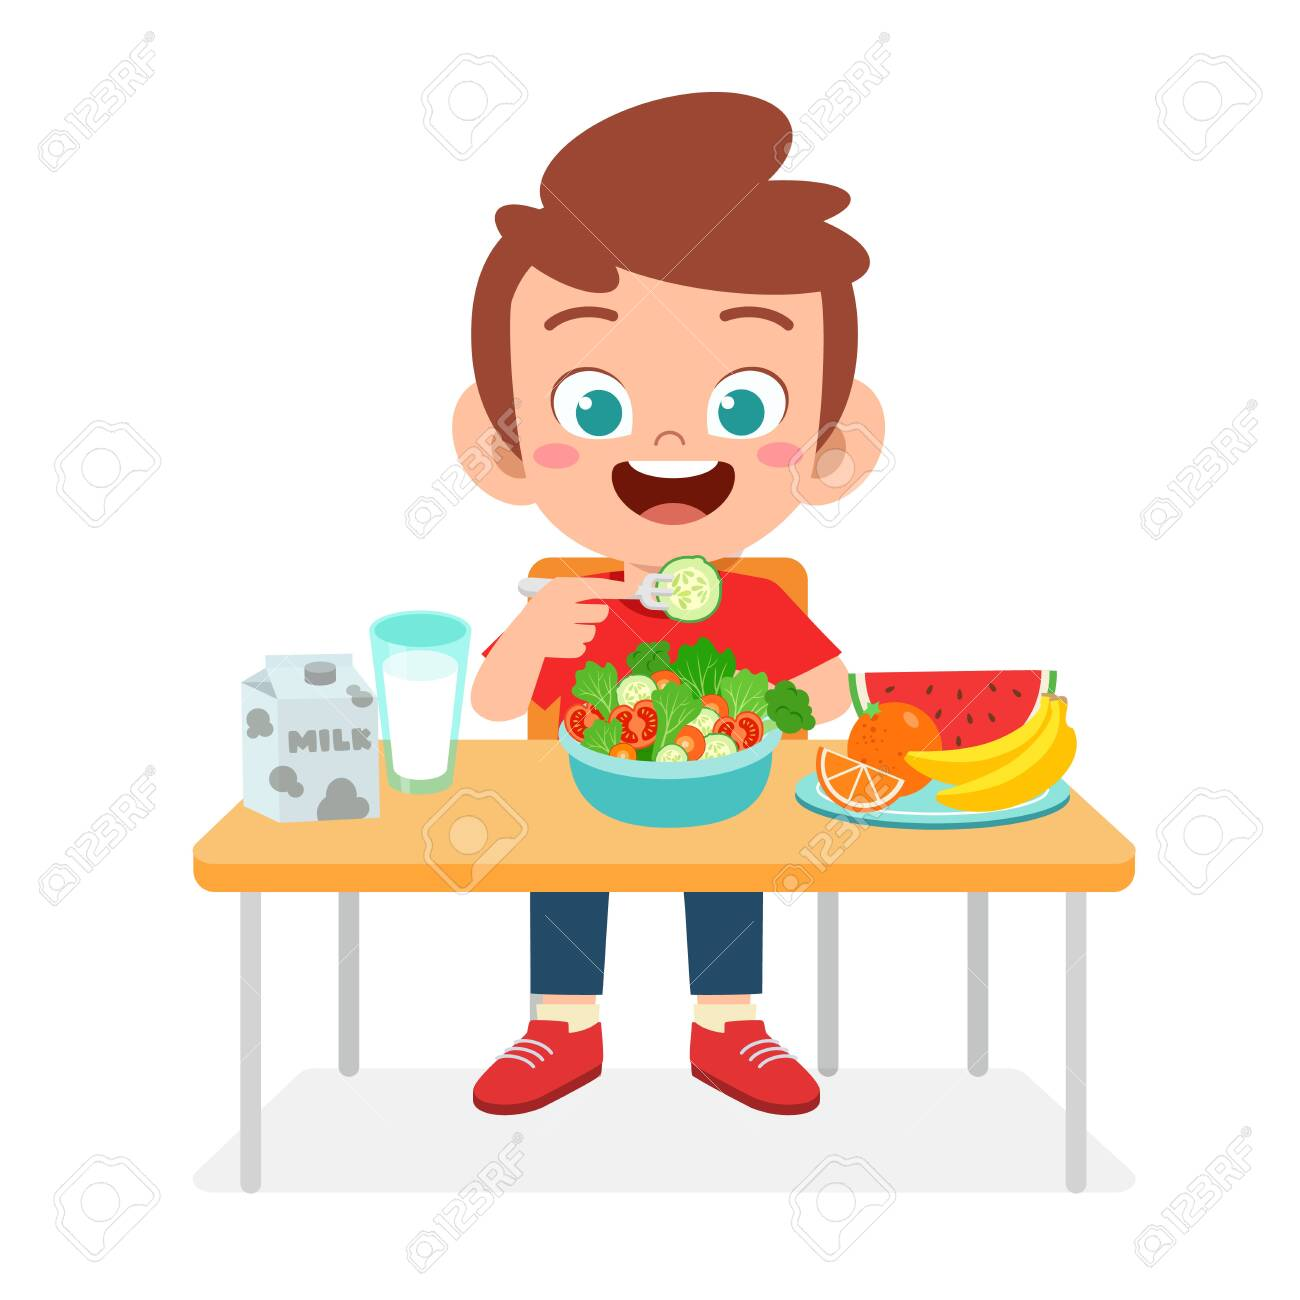 Happy Cute Kid Boy Eat Healthy Food Royalty Free Cliparts Vectors And Stock Illustration Image 138517885